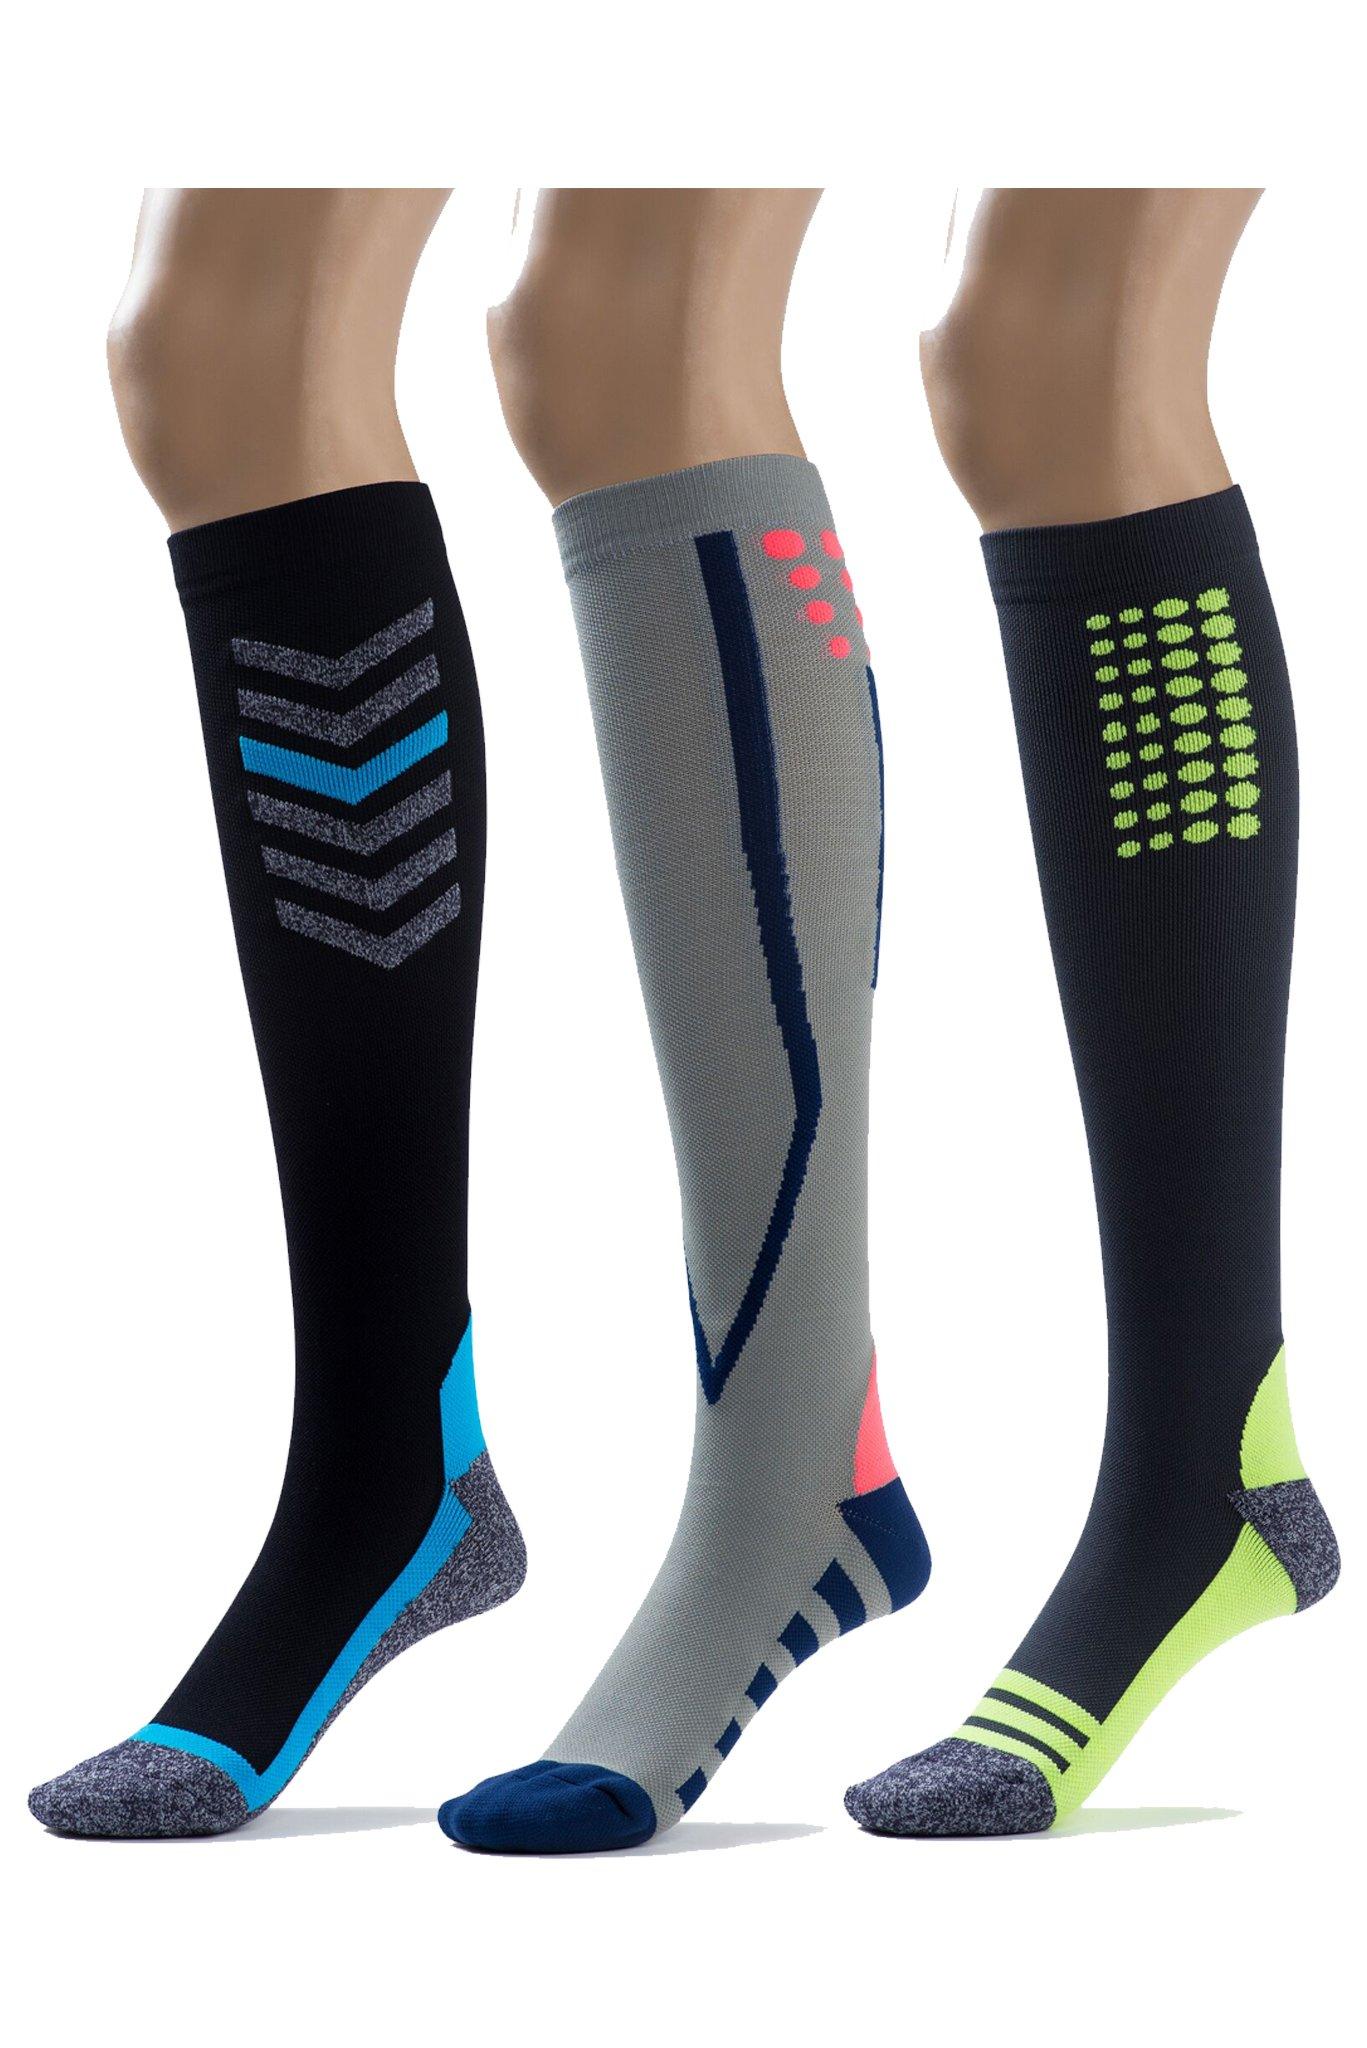 Silky Toes Compression Socks for Men & Women (20-30 mmHg) Athletic Fit for Running, Nurses, Shin Splints, Flight Travel & Maternity Pregnancy (Multi Pack- Grey/Blue/Black, Medium) by Silky Toes (Image #1)